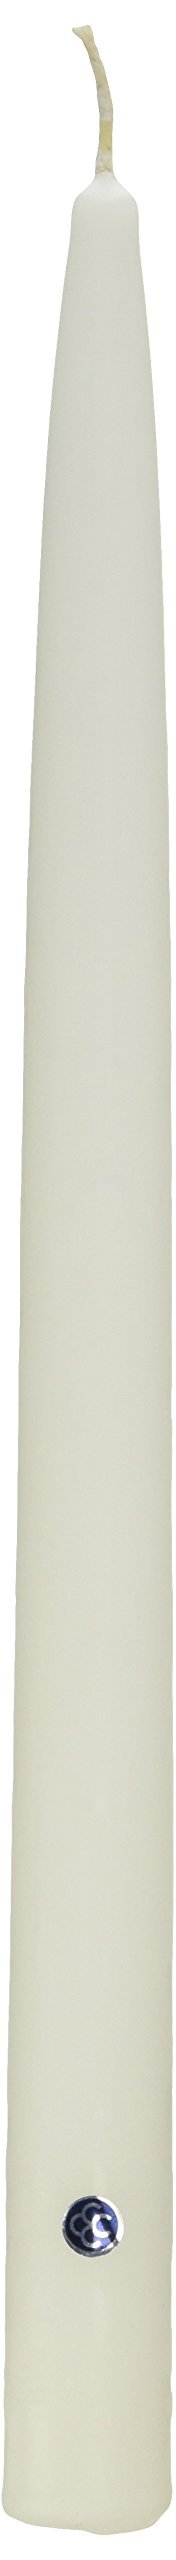 Colonial Candle Handipt Tapers, 12-Inch, White, Pack of 12 by Colonial Candle